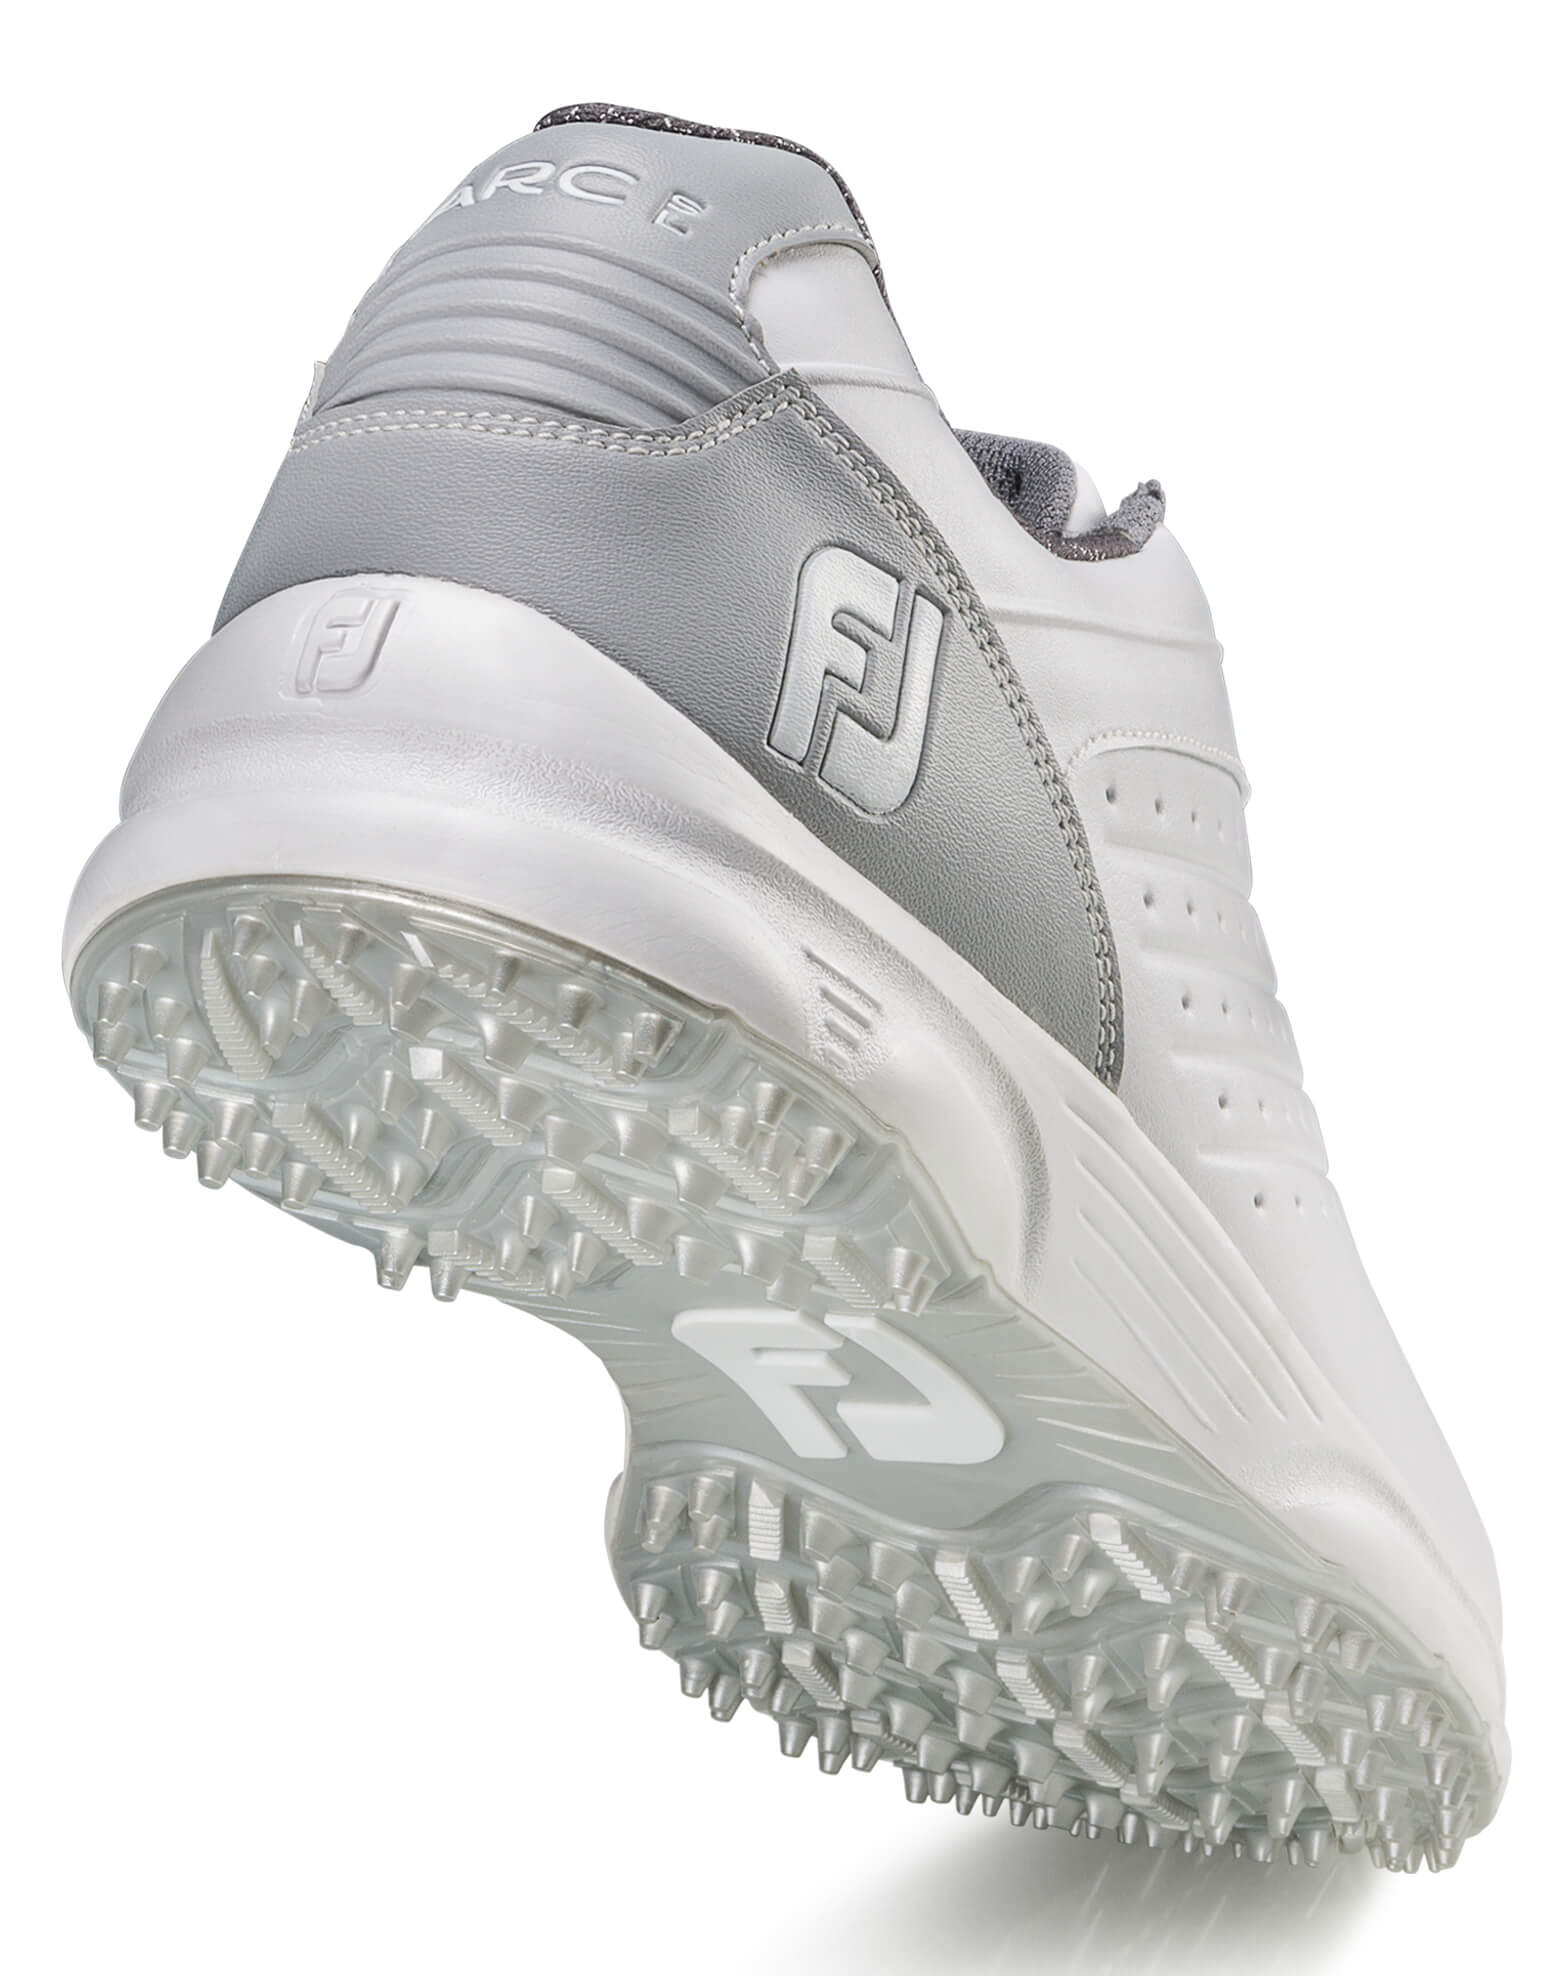 FootJoy-FJ-Arc-SL-Golf-Shoes-Men-039-s-Spikeless-Waterproof-New-Choose-color thumbnail 15